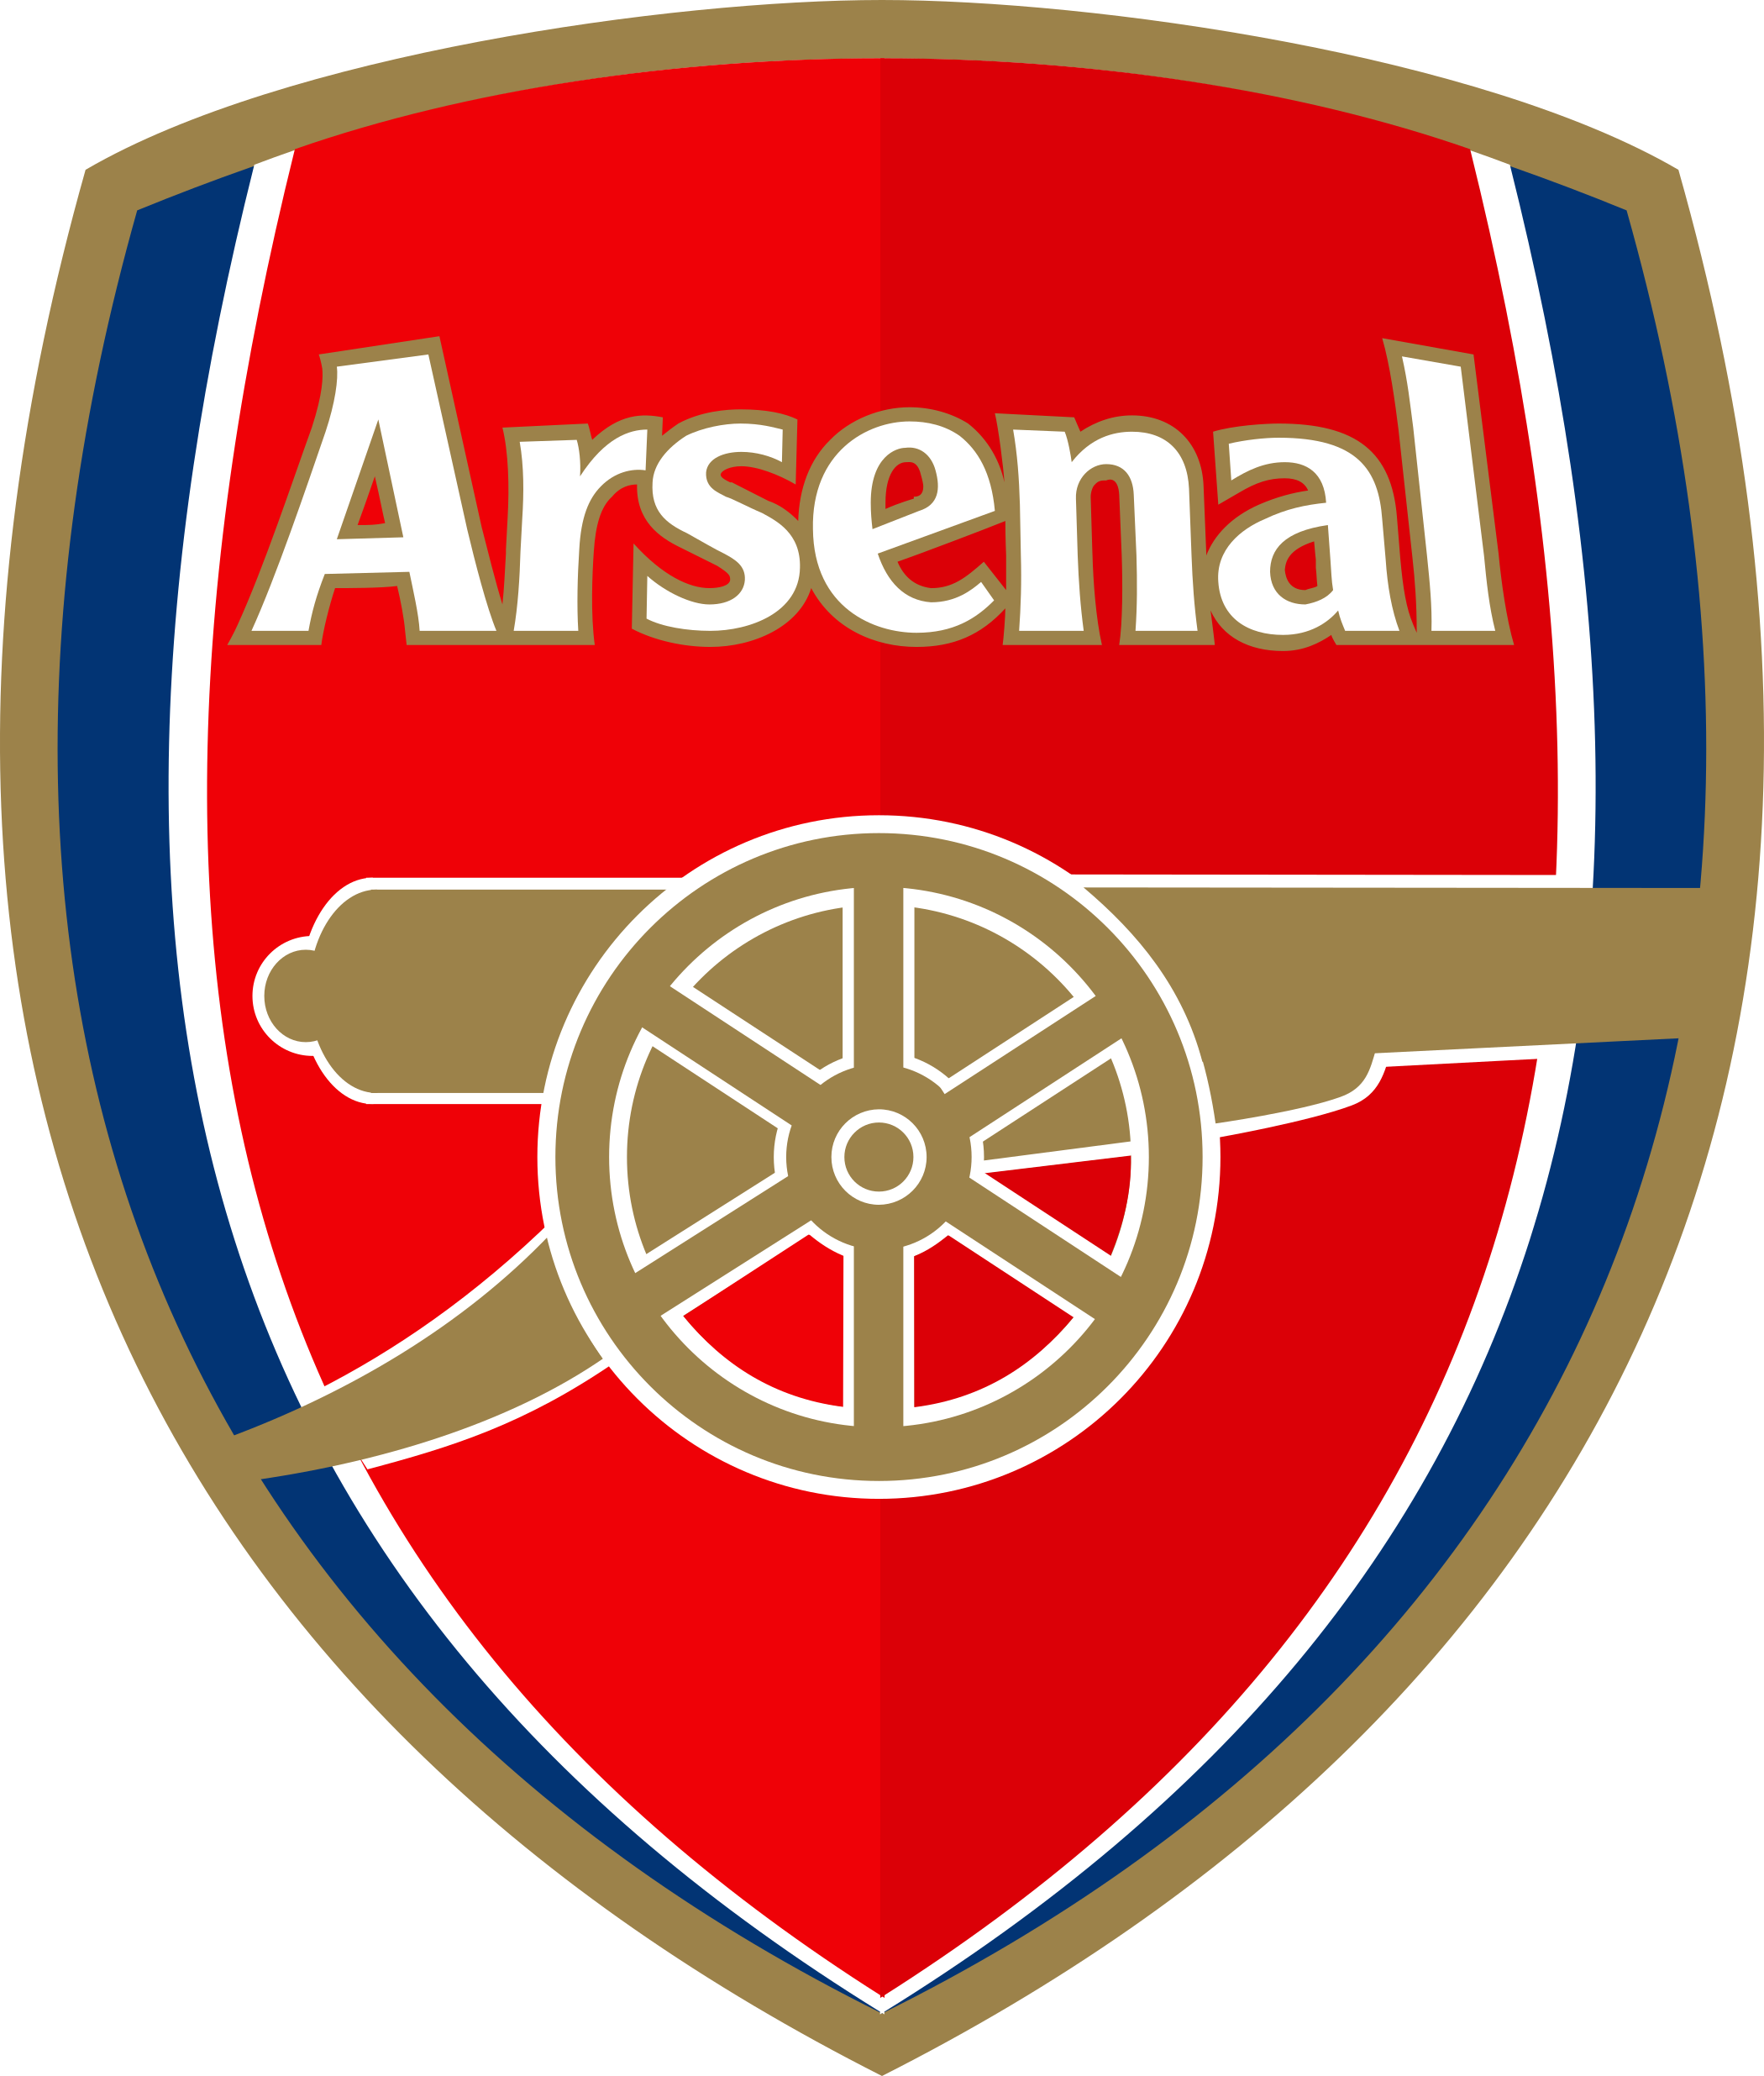 Arsenal logo escudo shield 1 - Arsenal F.C Logo